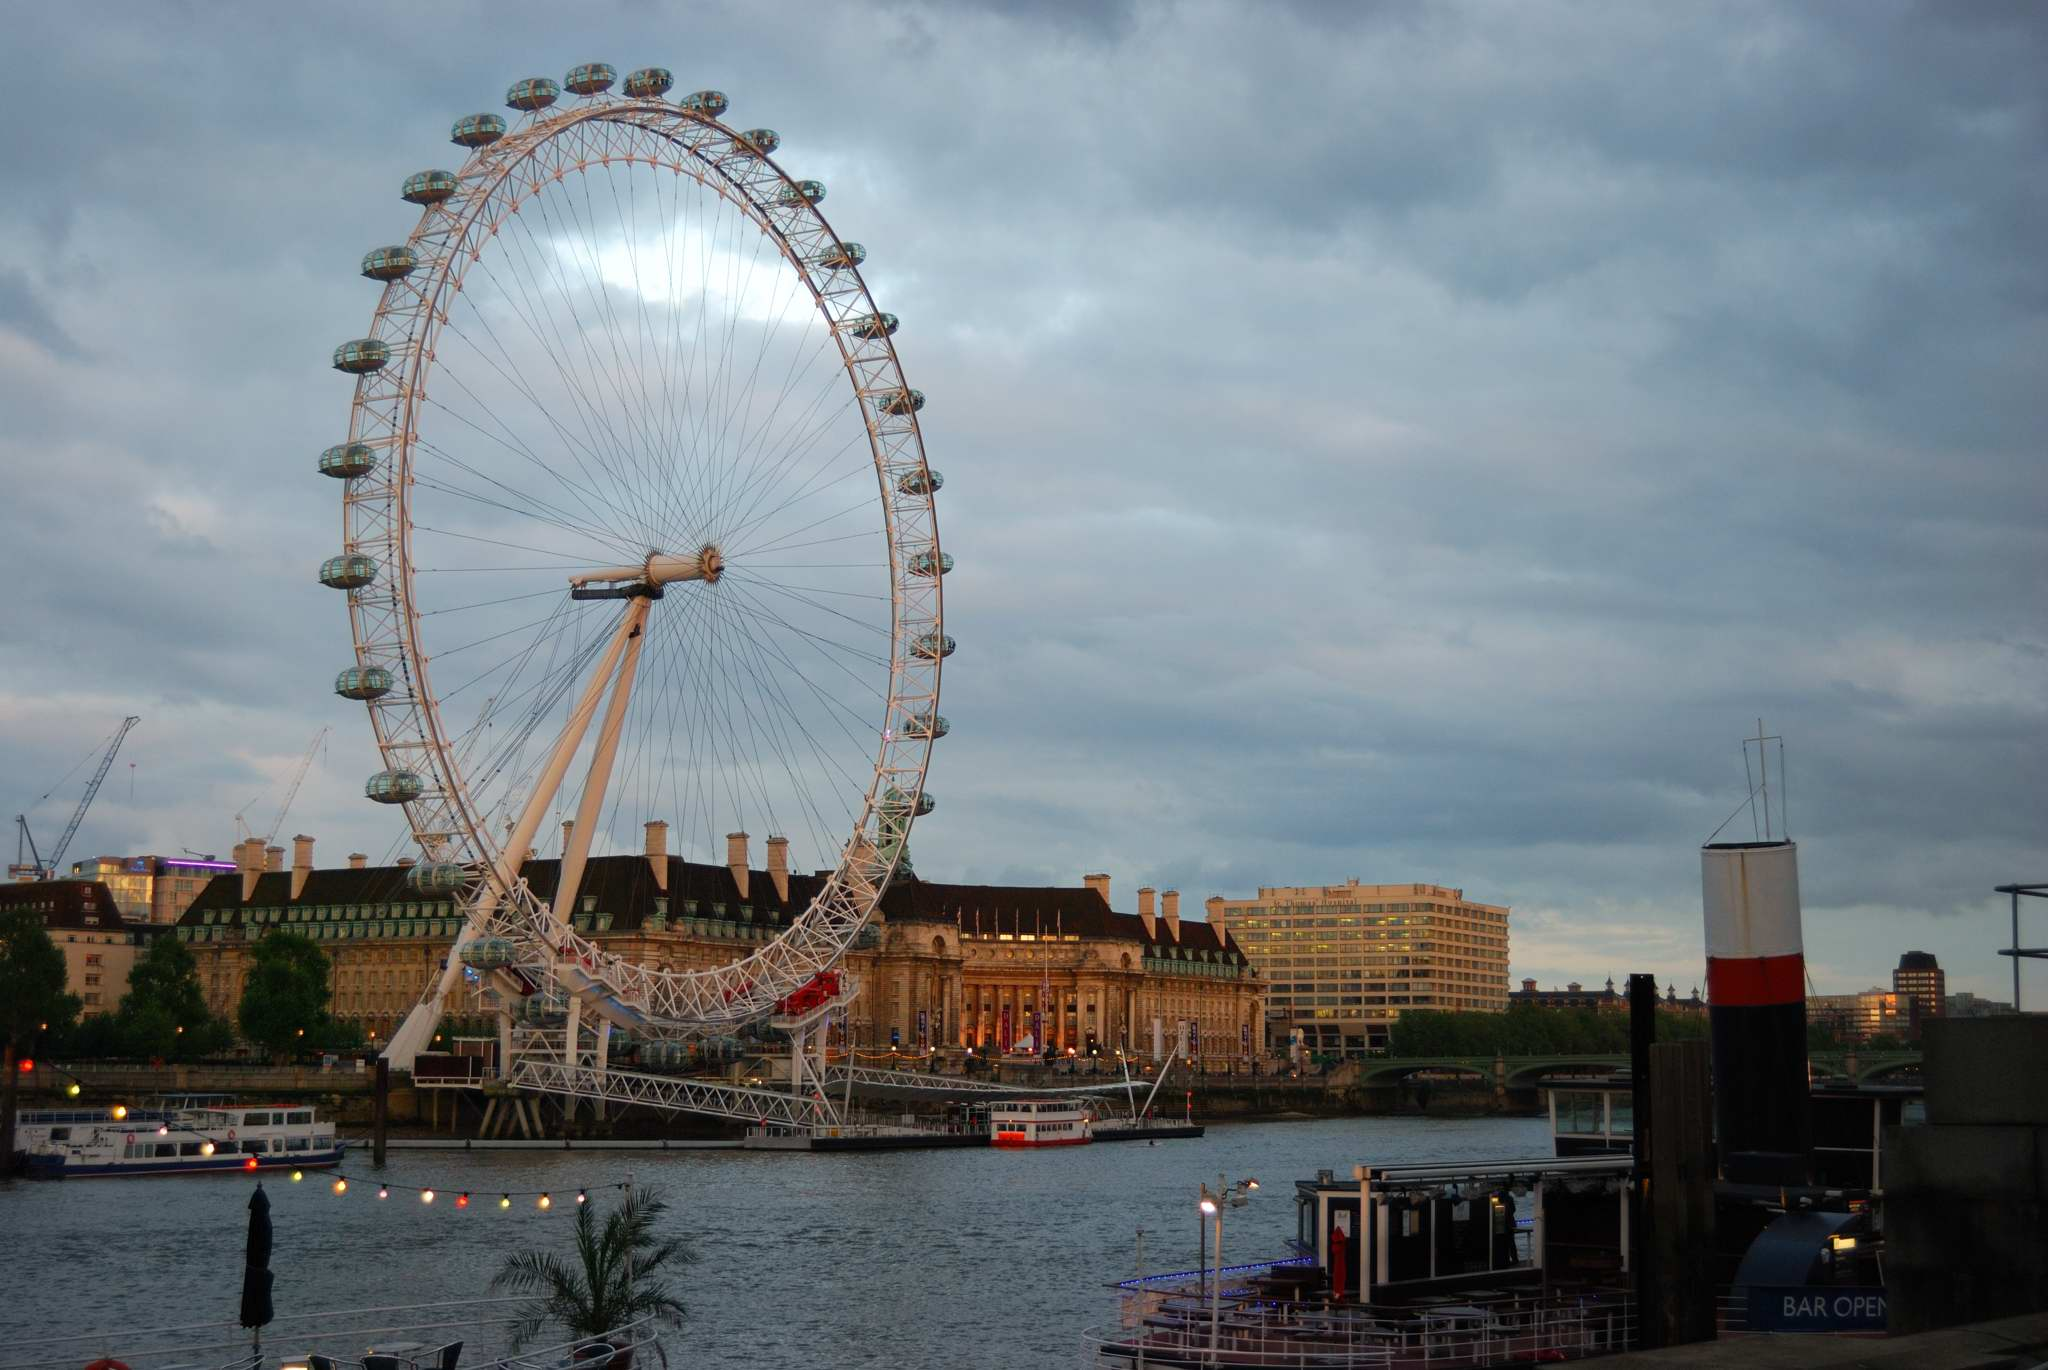 Volar en el London Eye y brindis con champagne